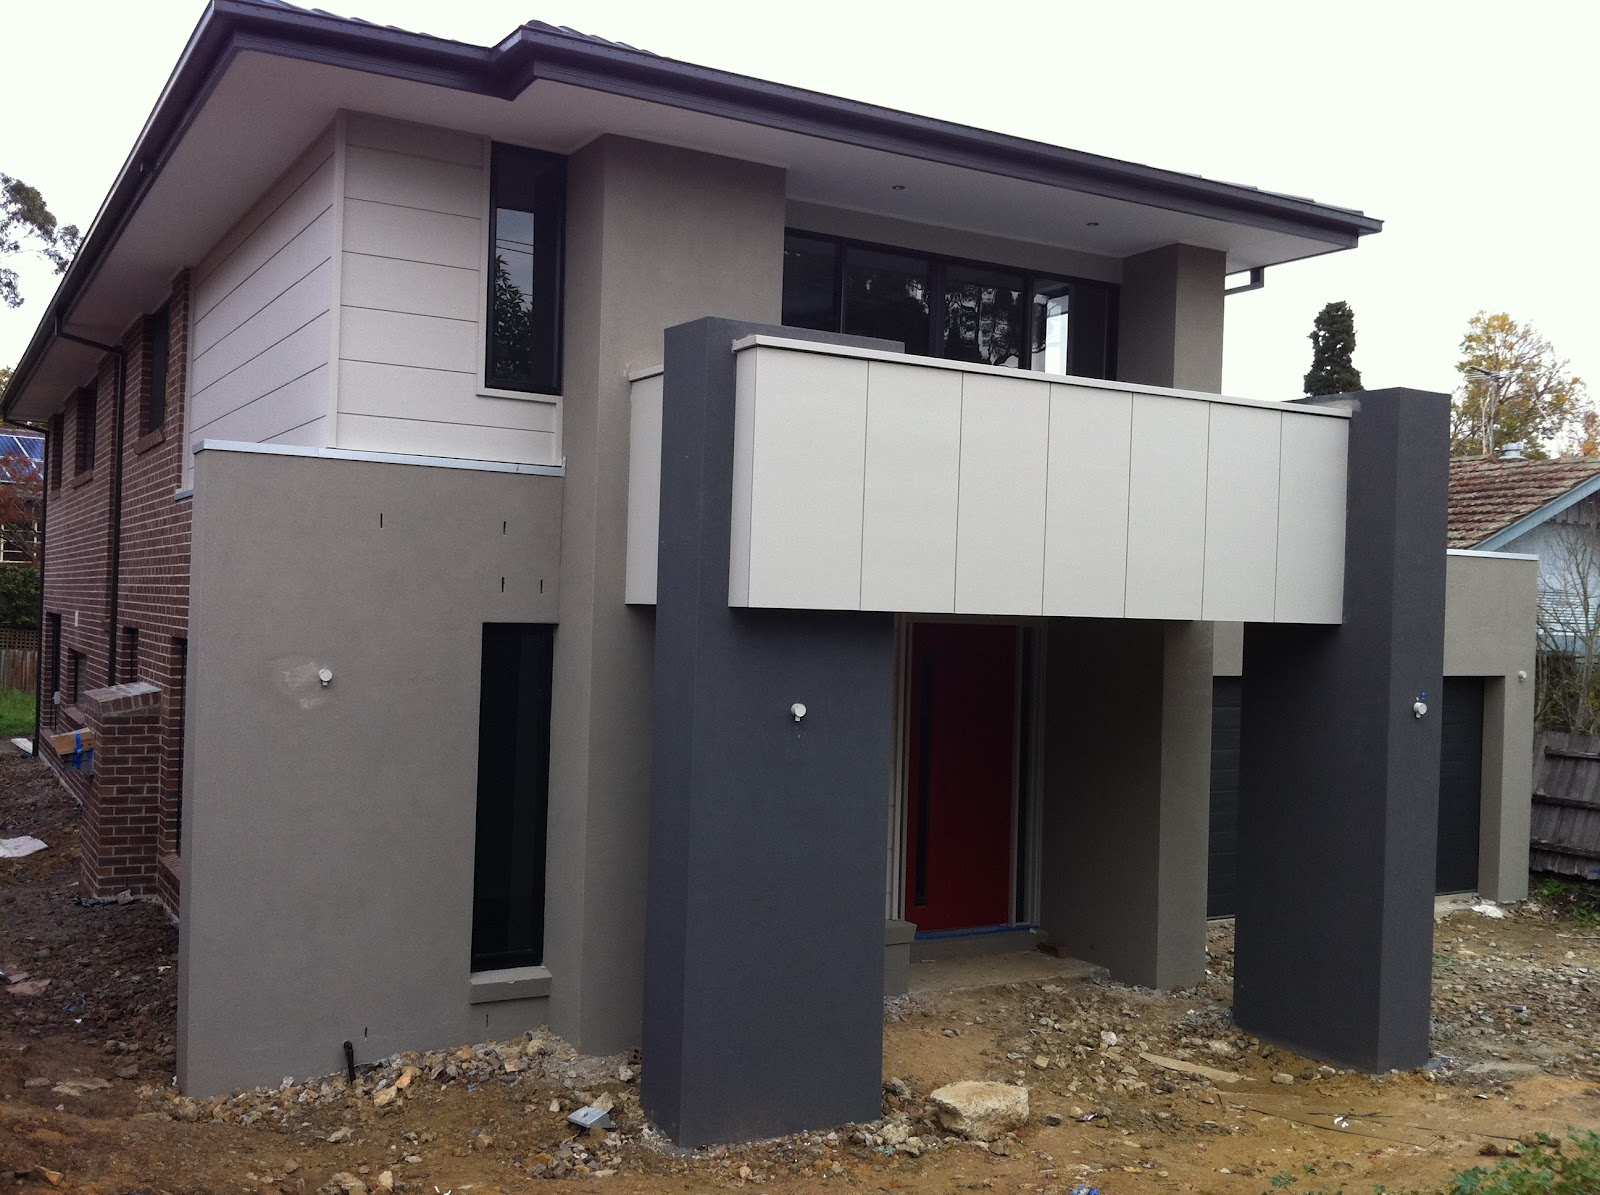 Cam kirsten building our new home with metricon red jezebel front fa ade reveal - Dulux exterior paint colour schemes property ...